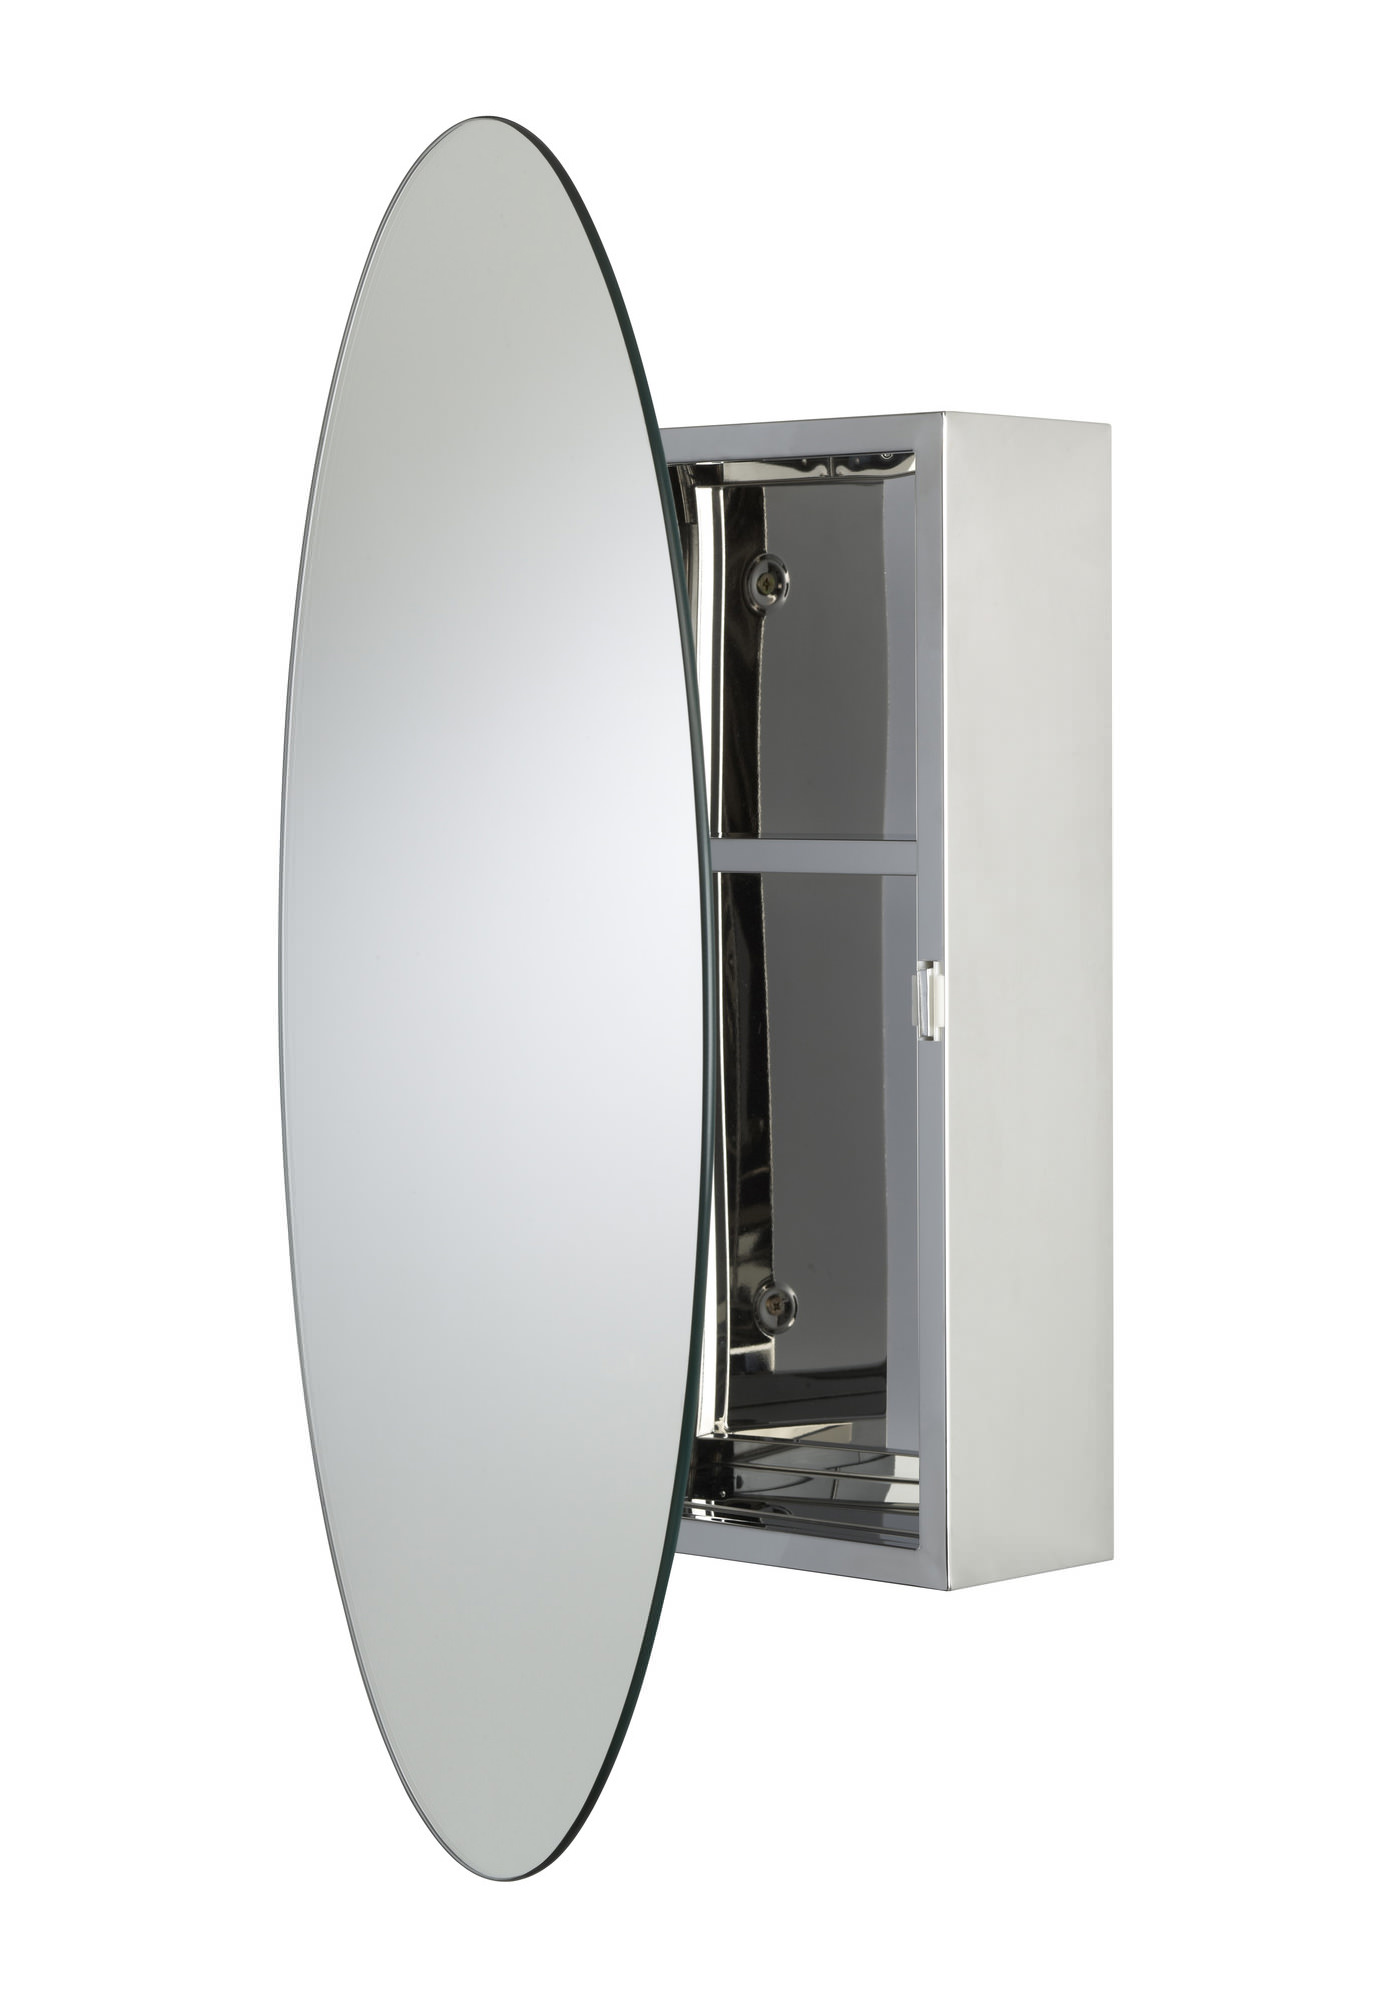 Croydex Tay Stainless Steel Oval Door Mirror Cabinet WC870105